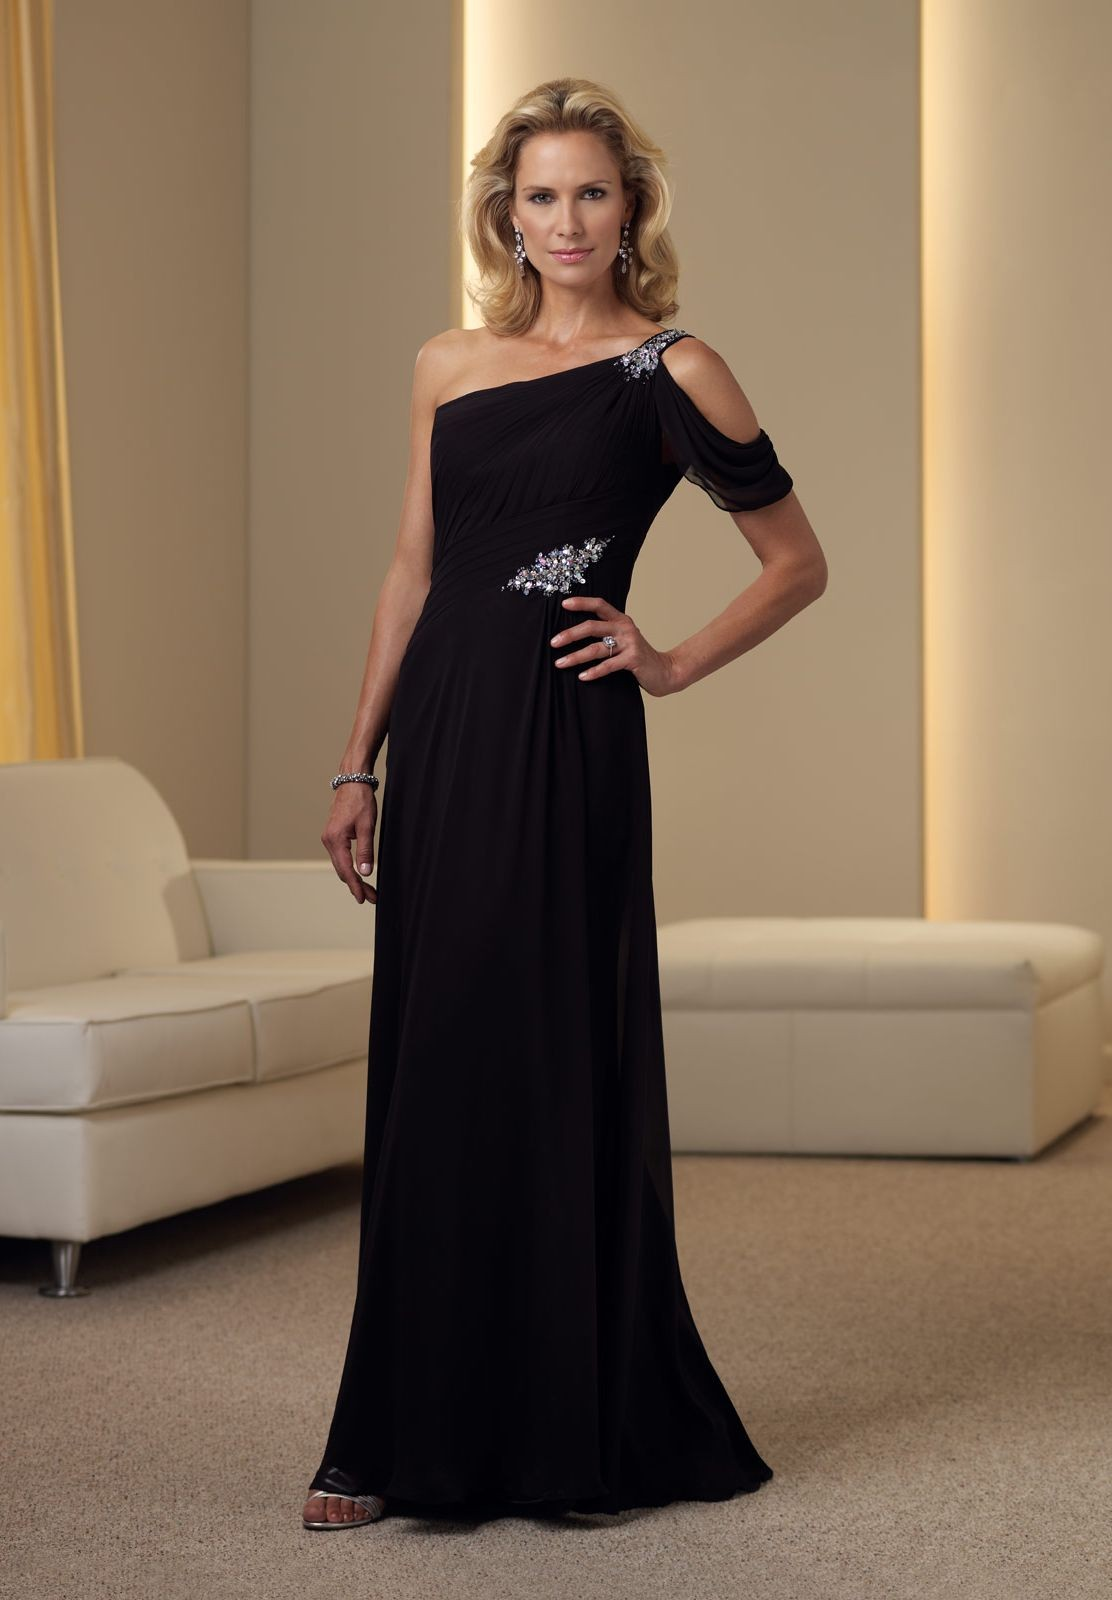 WhiteAzalea Mother of The Bride Dresses: March 2012